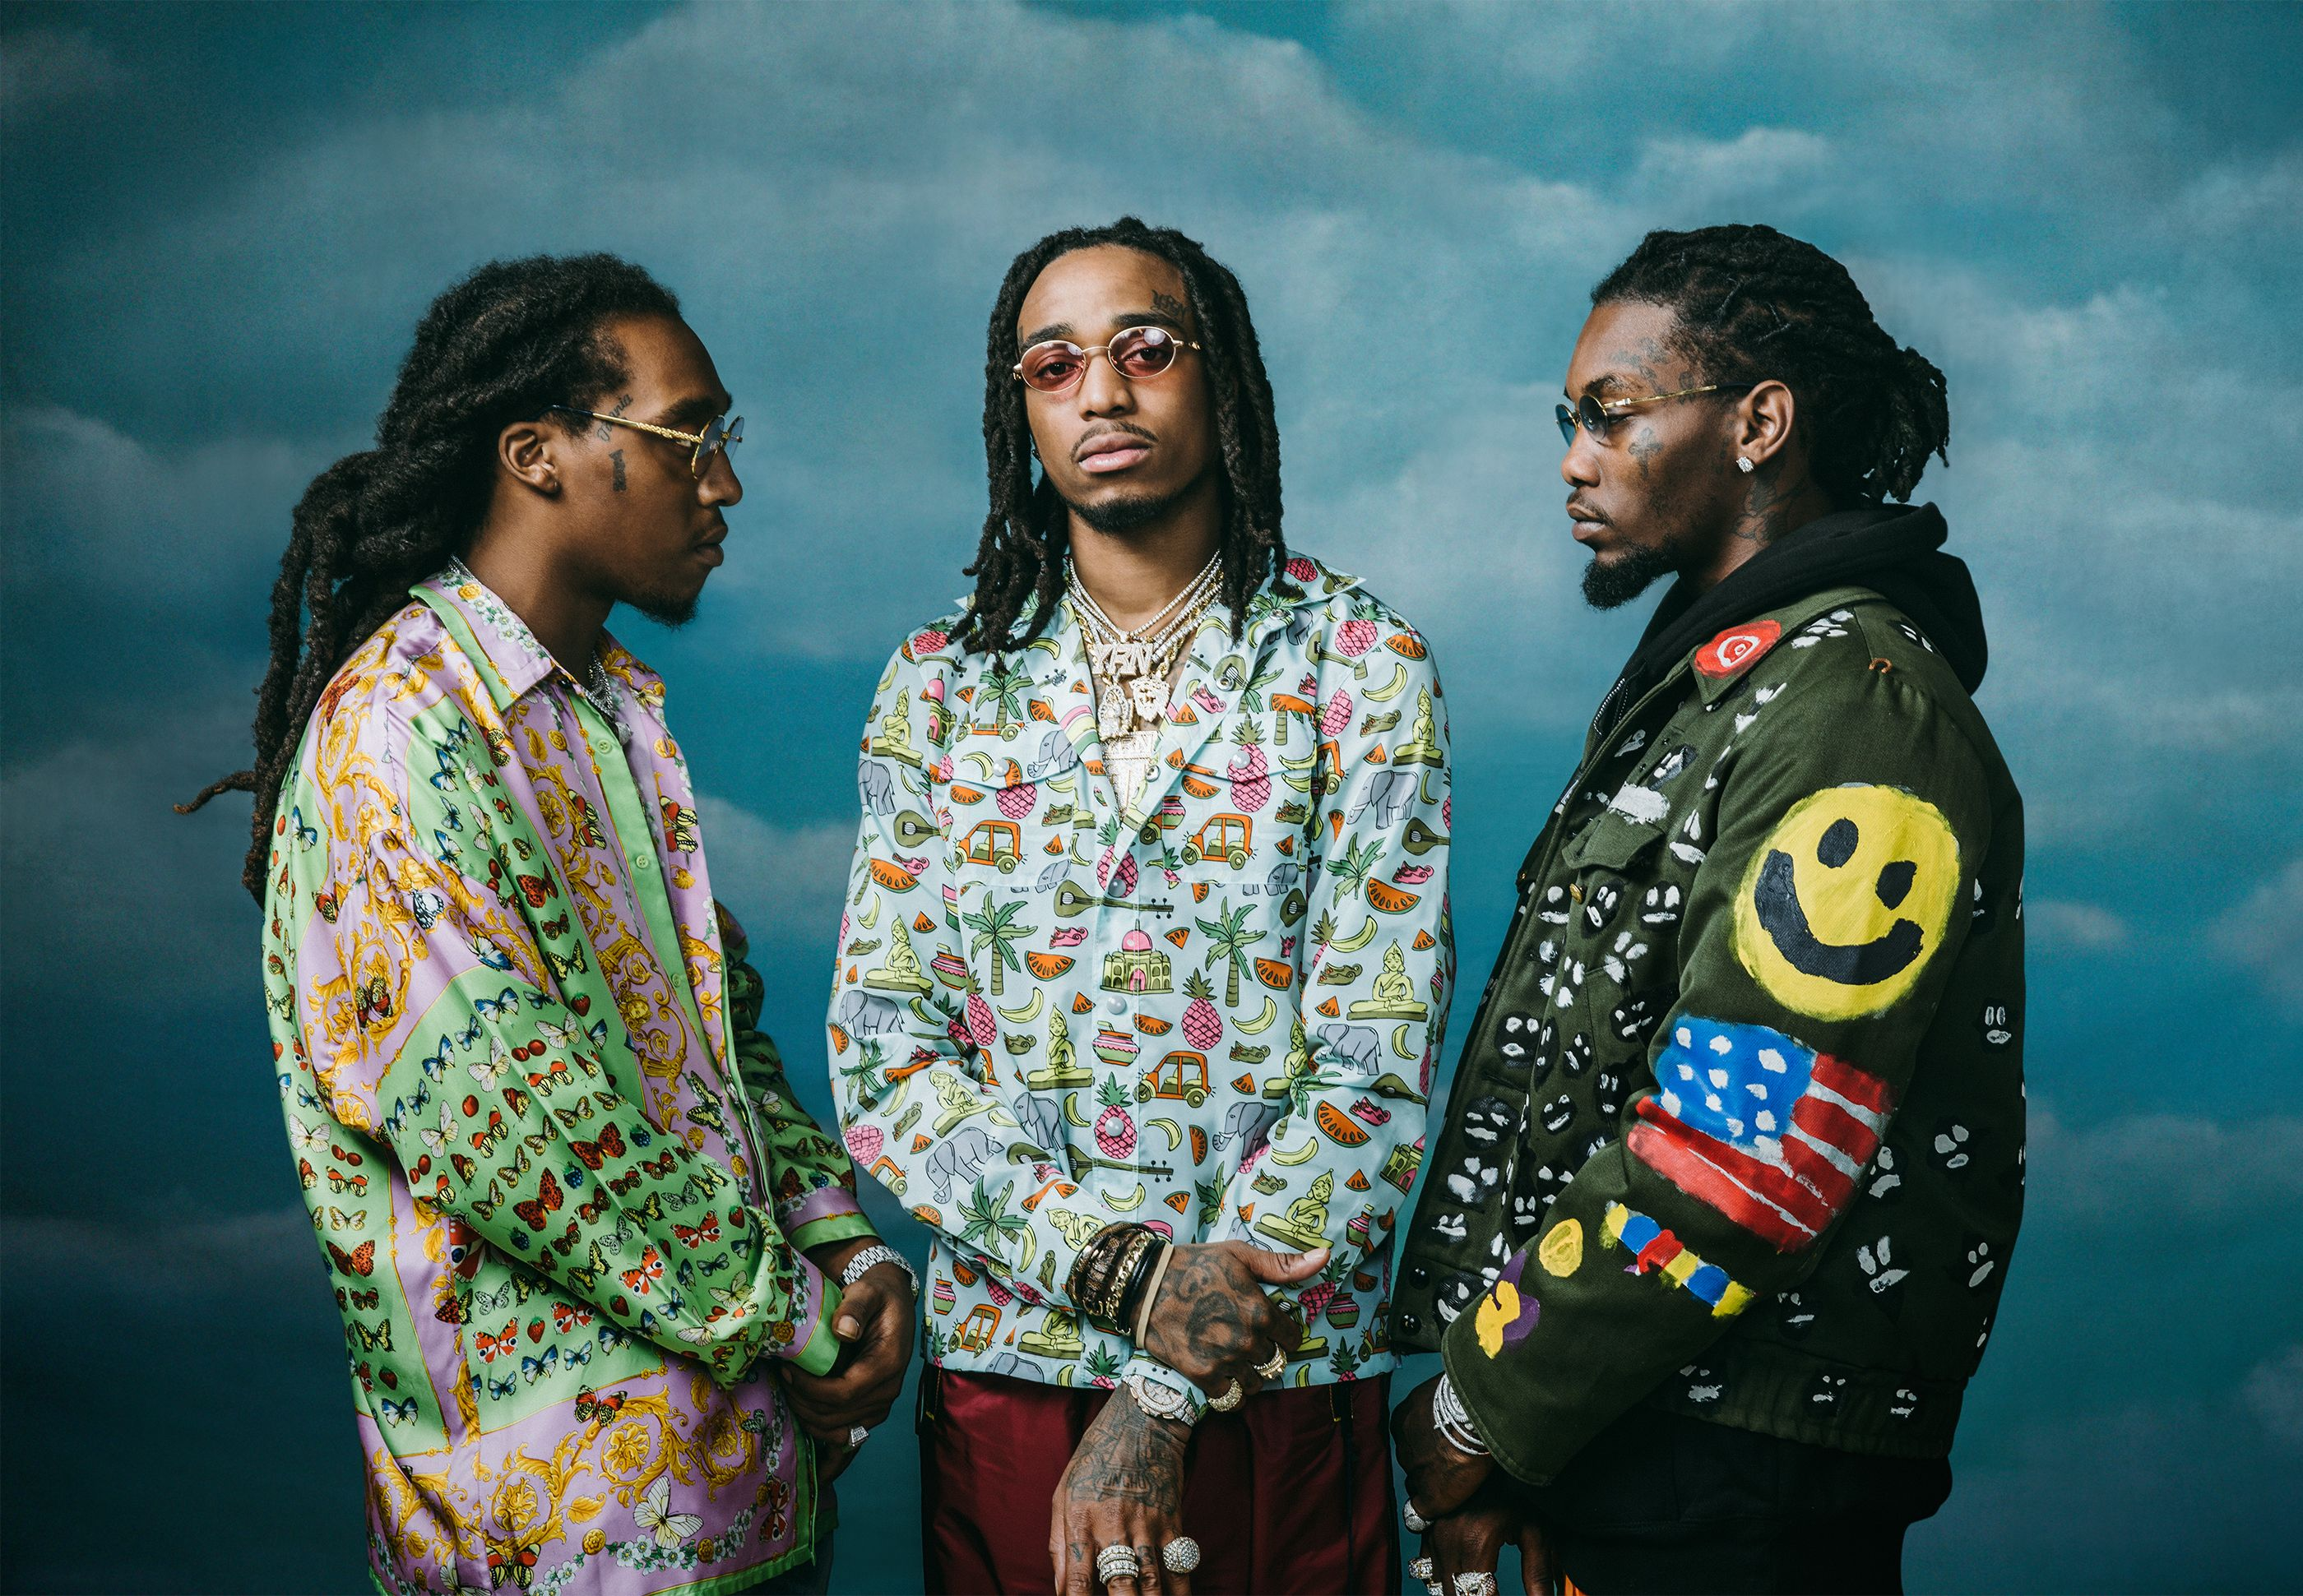 Migos Wallpapers   Top Migos Backgrounds   WallpaperAccess 2800x1941